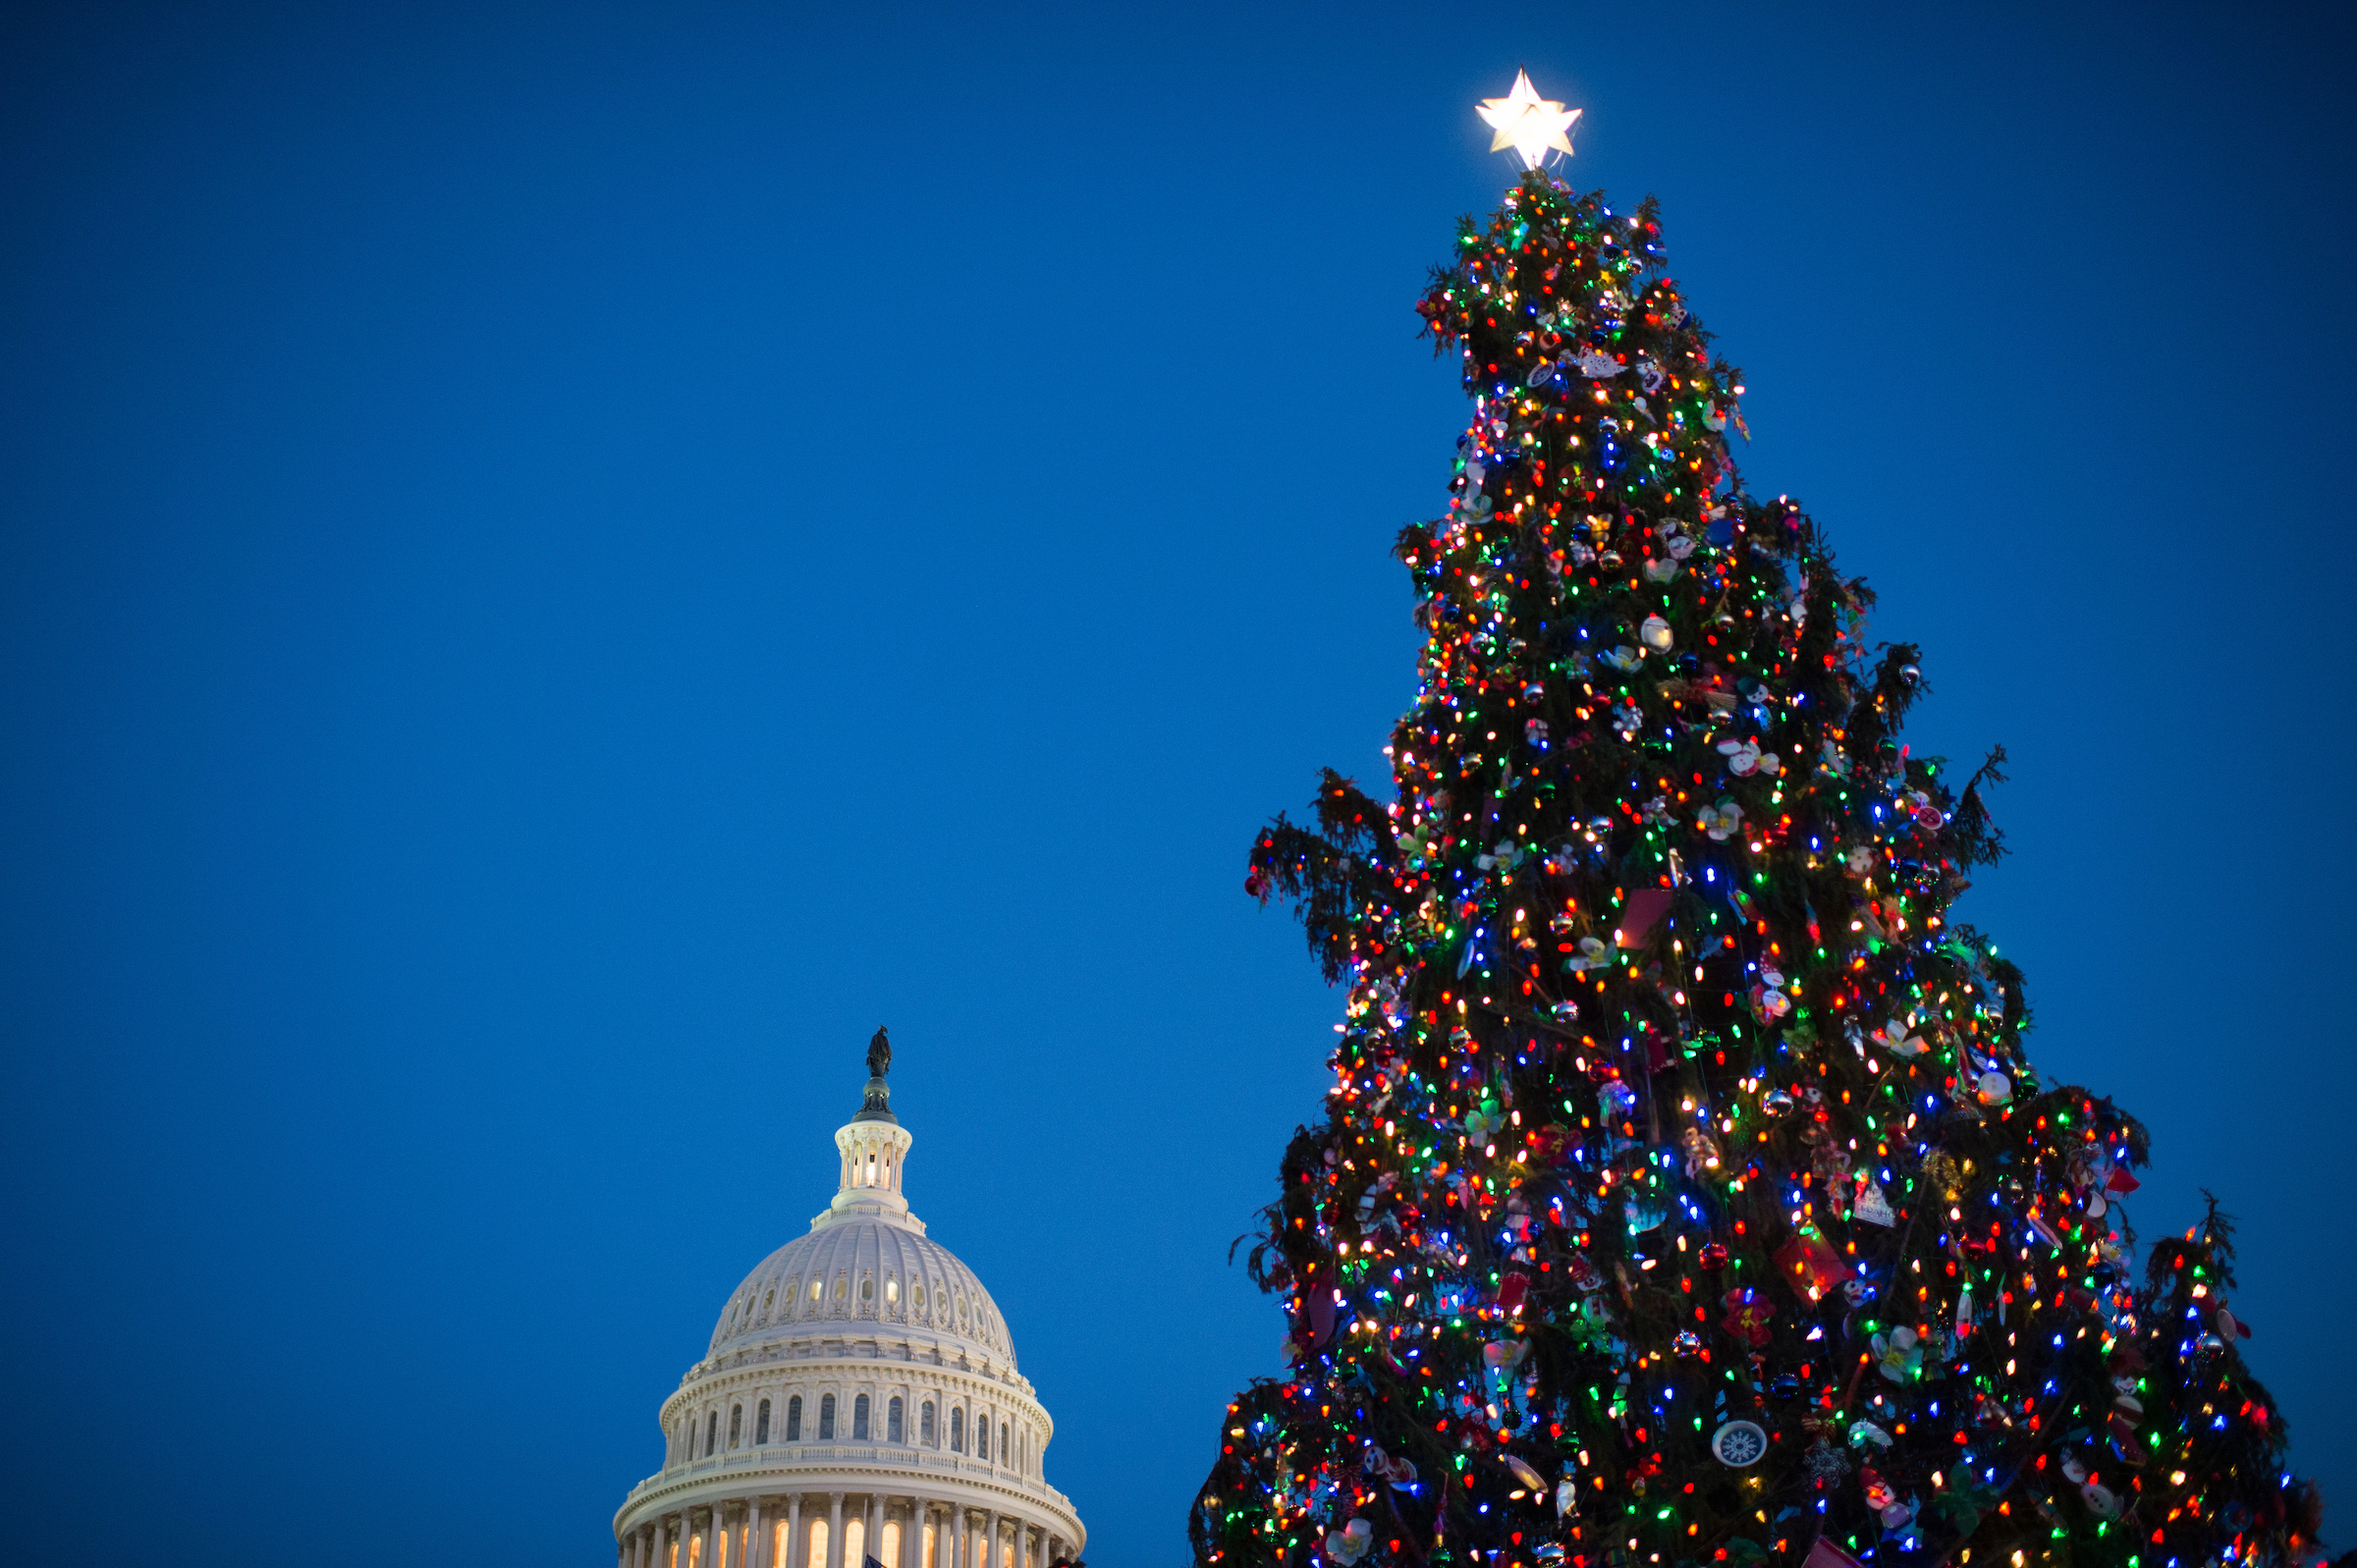 The U.S. Capitol Christmas Tree. (Bill Clark/CQ Roll Call)